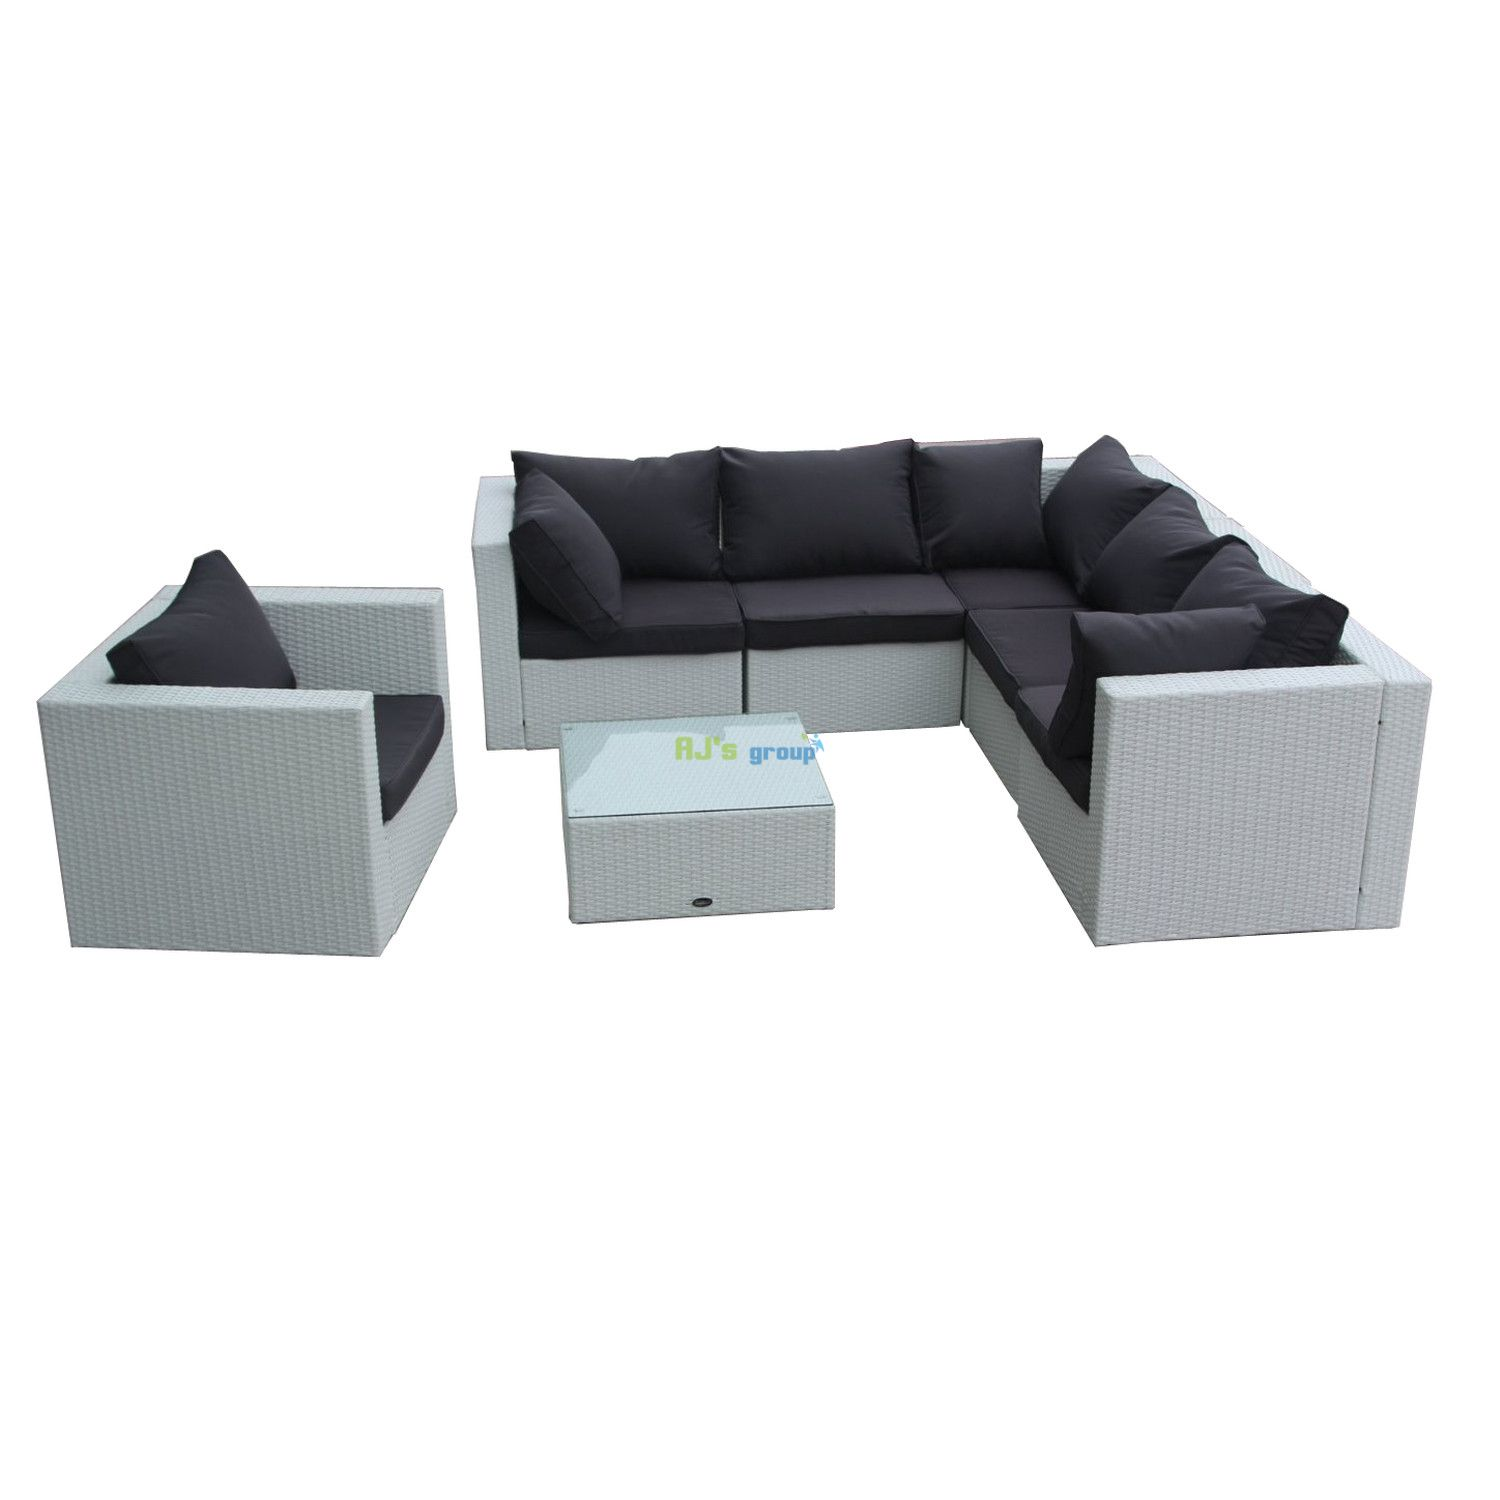 poly rattan gartenm bel new jersey alu garnitur lounge garten si. Black Bedroom Furniture Sets. Home Design Ideas